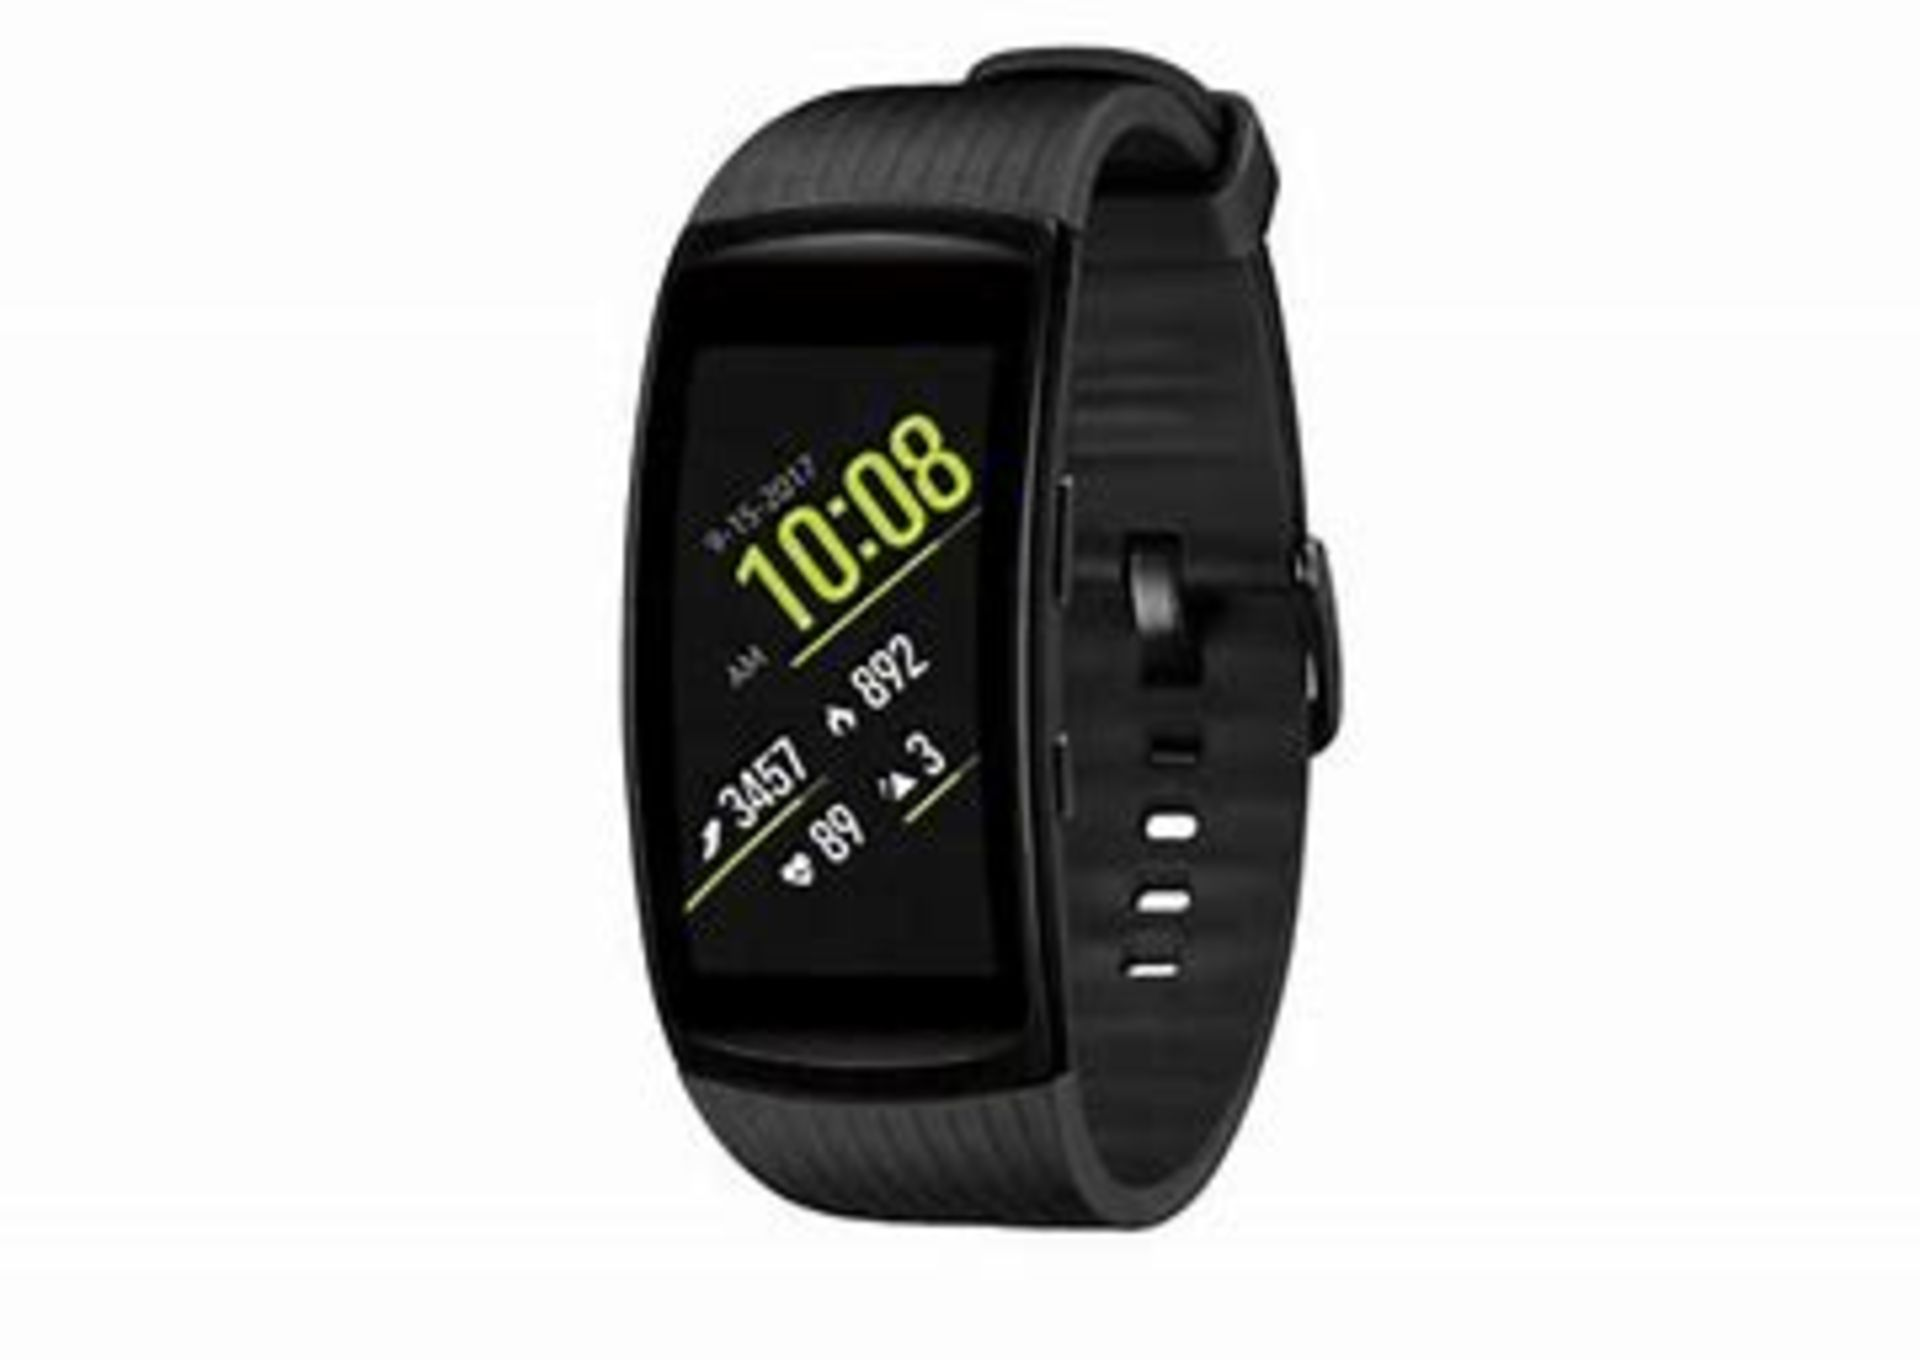 Lot 35 - SM-R365 (Gear Fit2 Pro) Black RRP £225 - Grade A - Perfect Working Condition - (Fully refurbished